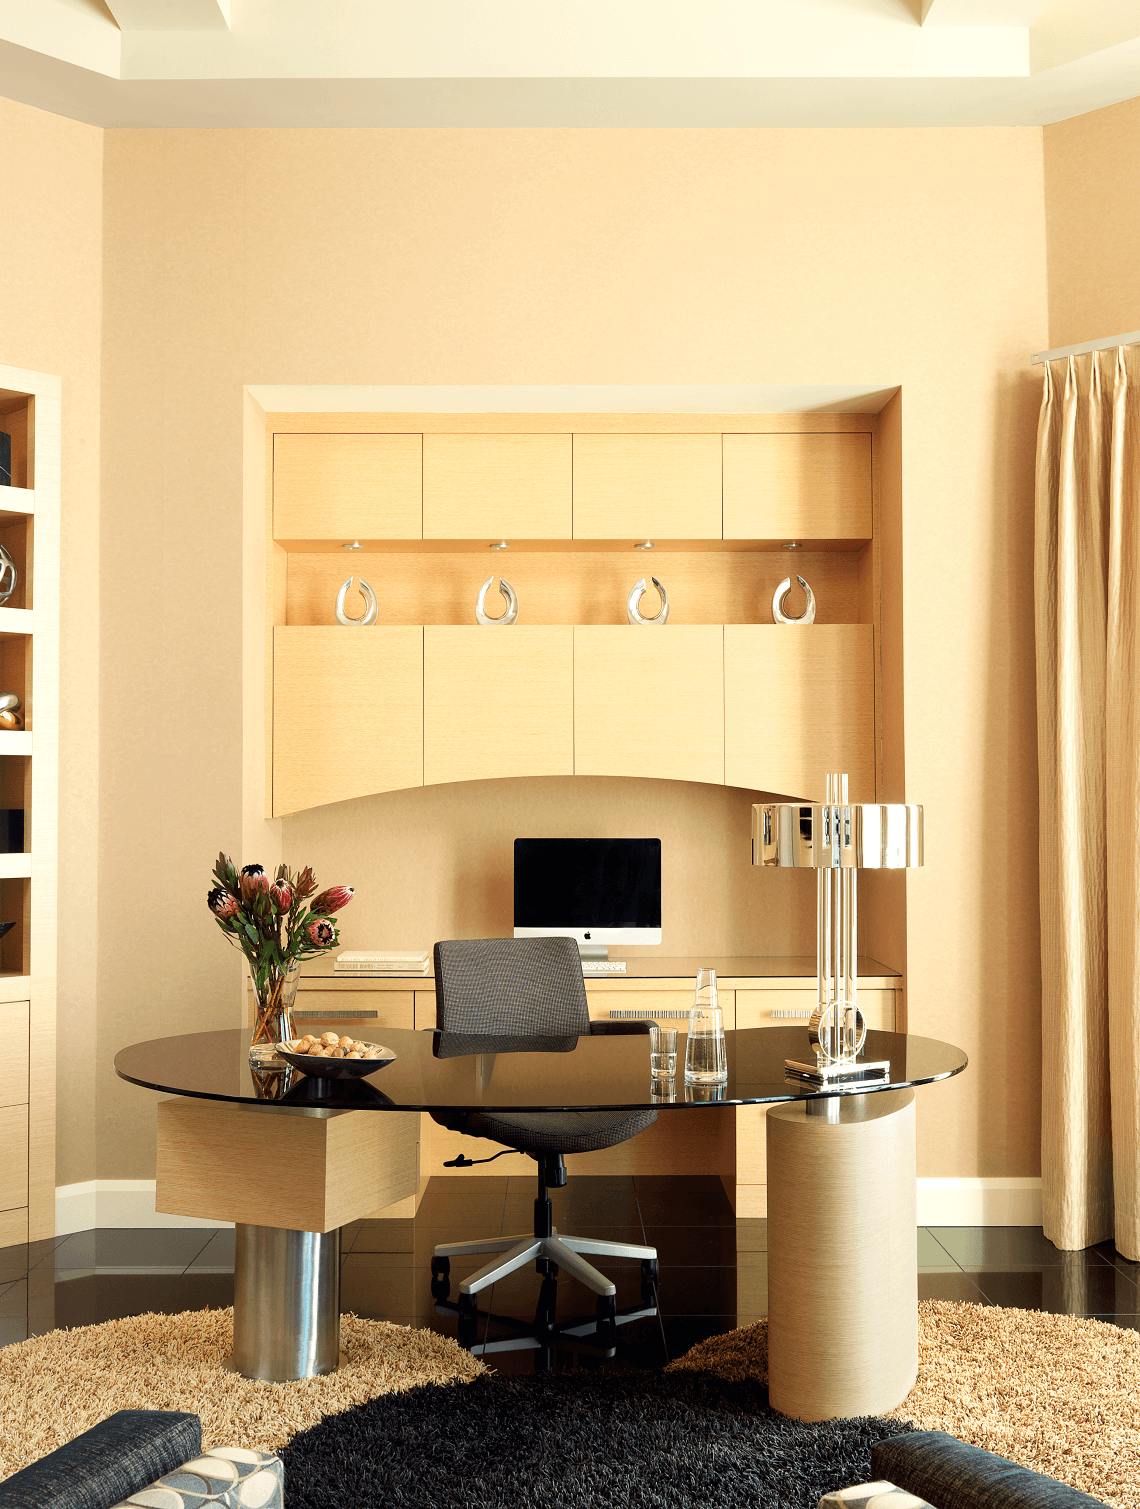 Home Office Cabinetry Design - emiliesbeauty.com -